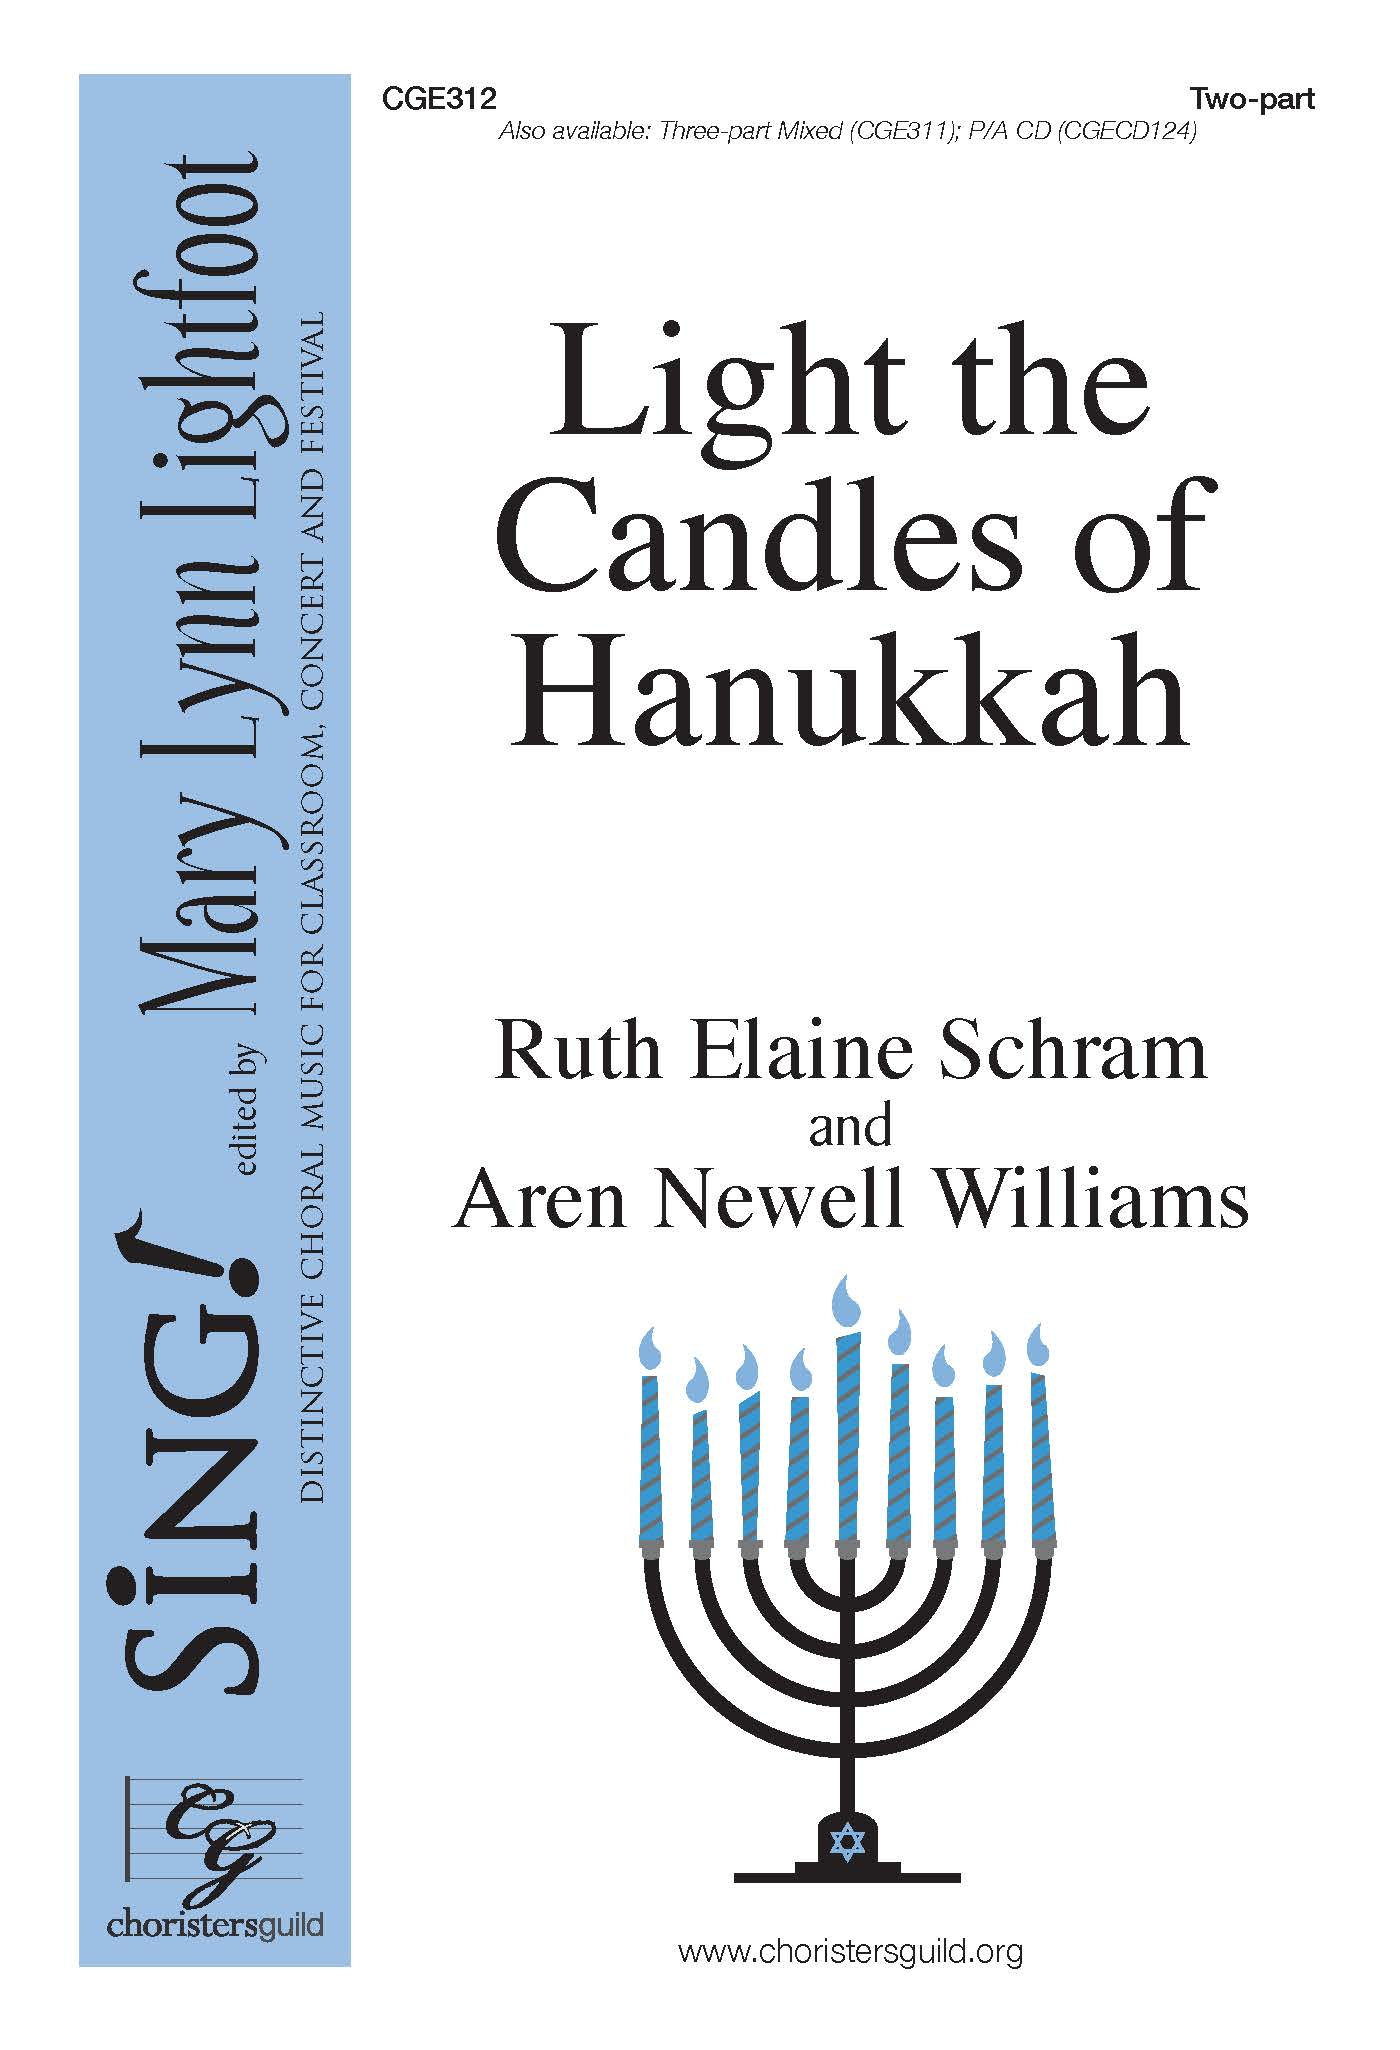 Light the Candles of Hanukkah - Two-part